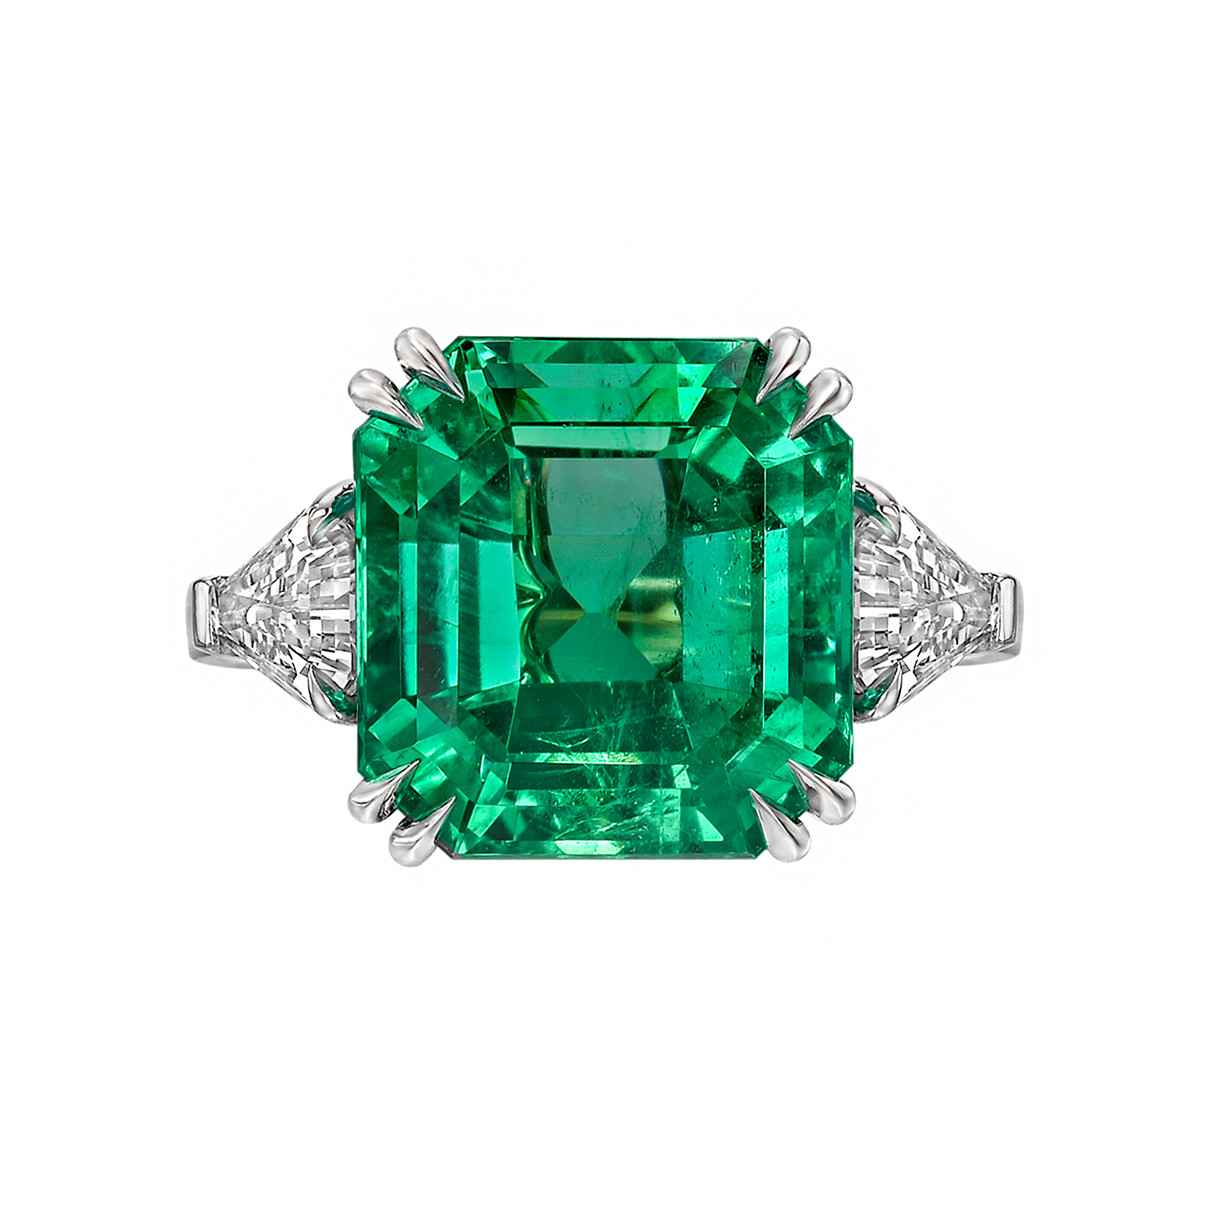 10.59ct Fine Colombian Emerald Ring